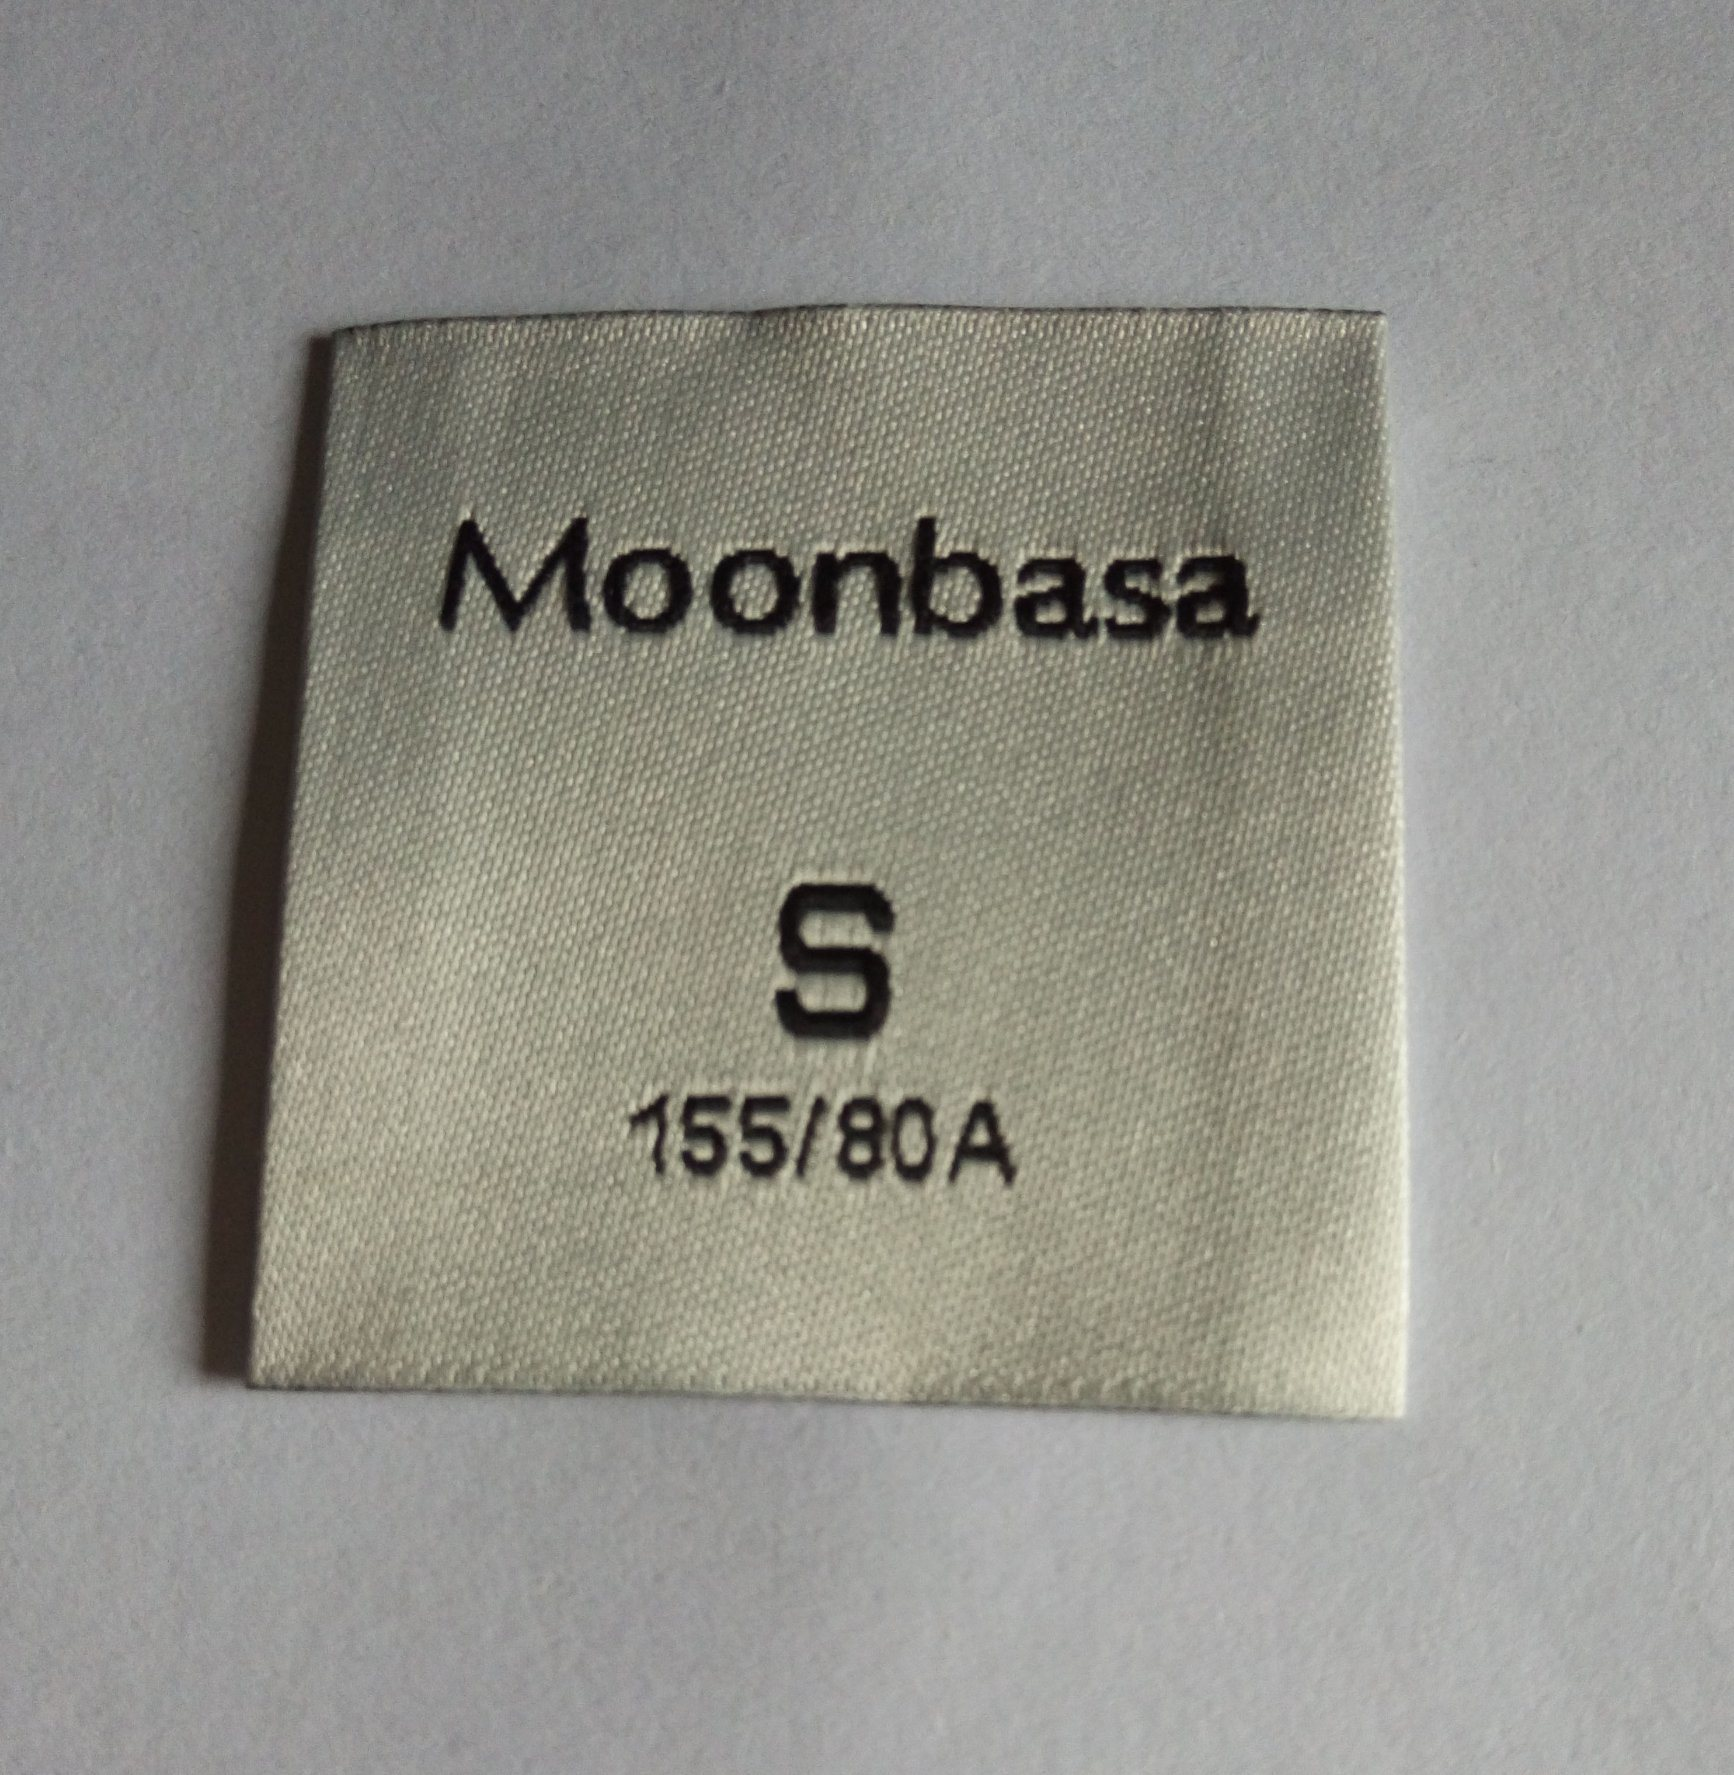 Clothing Main and Size Woven Label